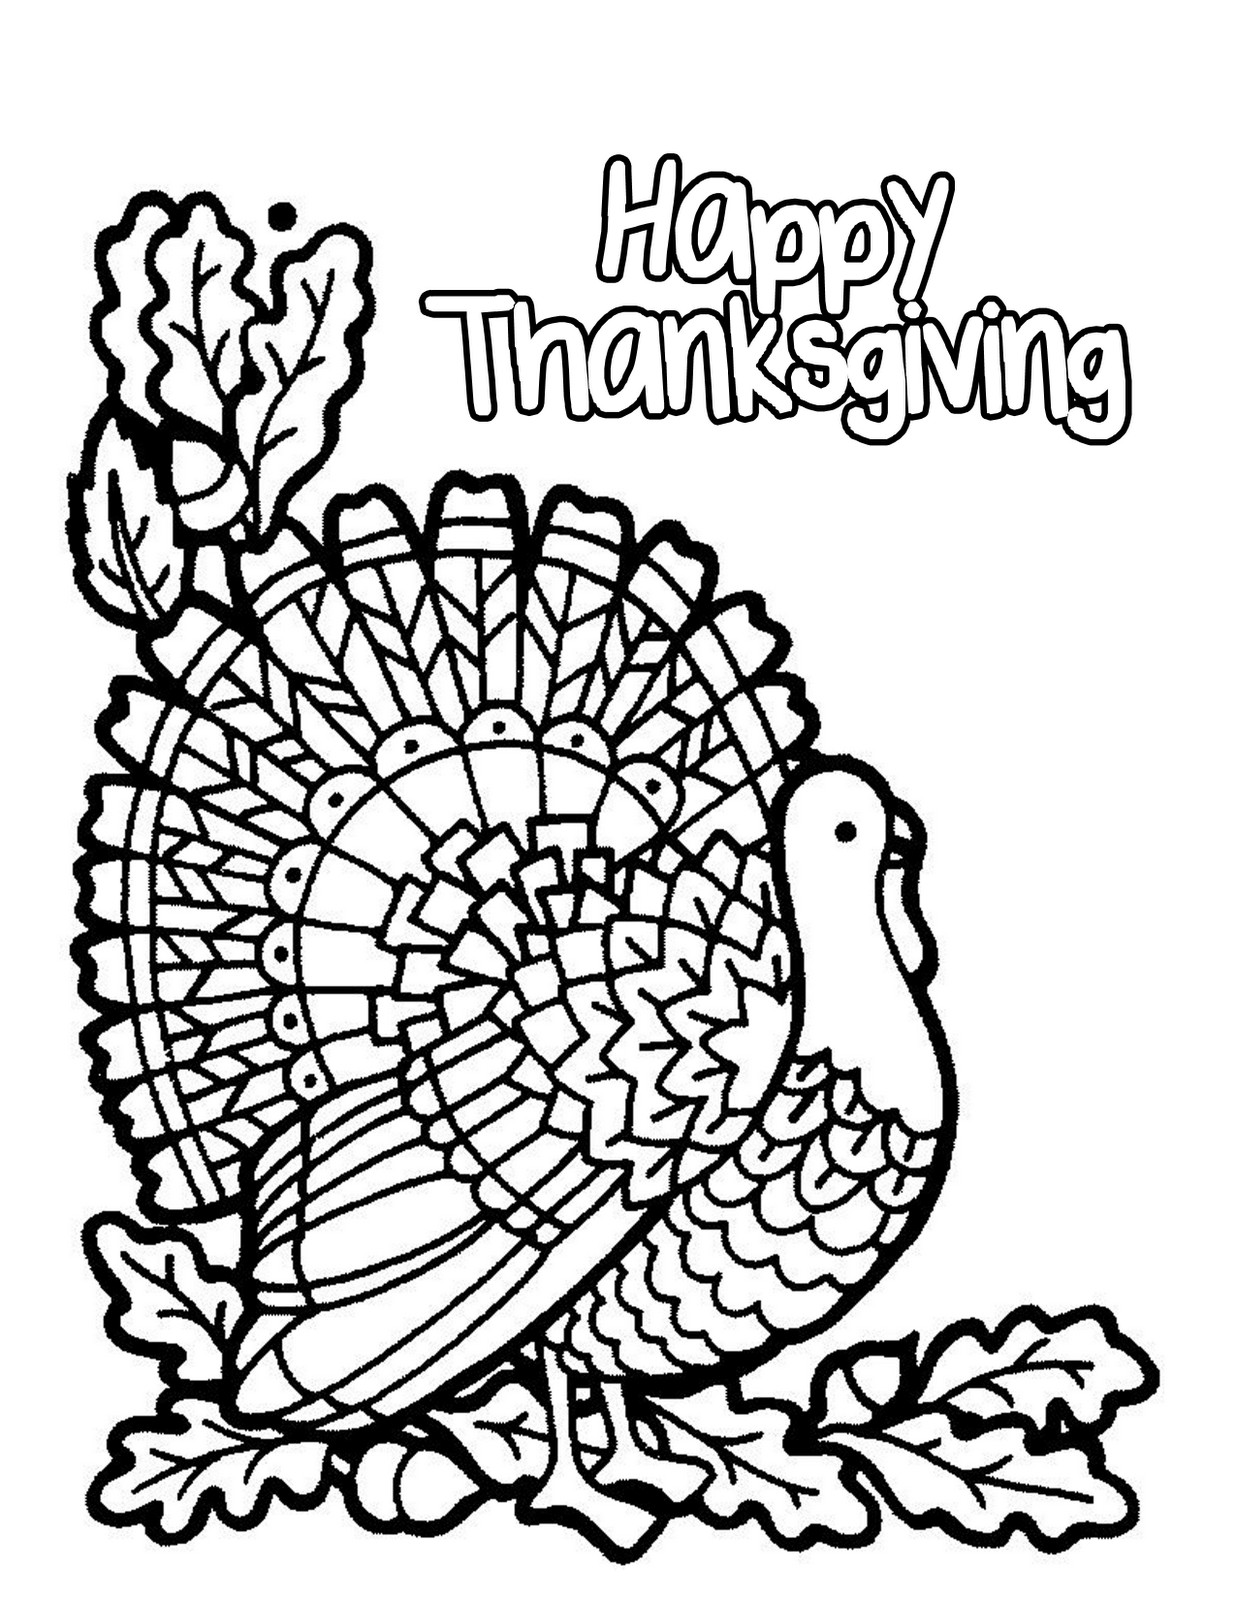 1236x1600 Imagination Thanksgiving Coloring Pages For Kindergarten Free Fair